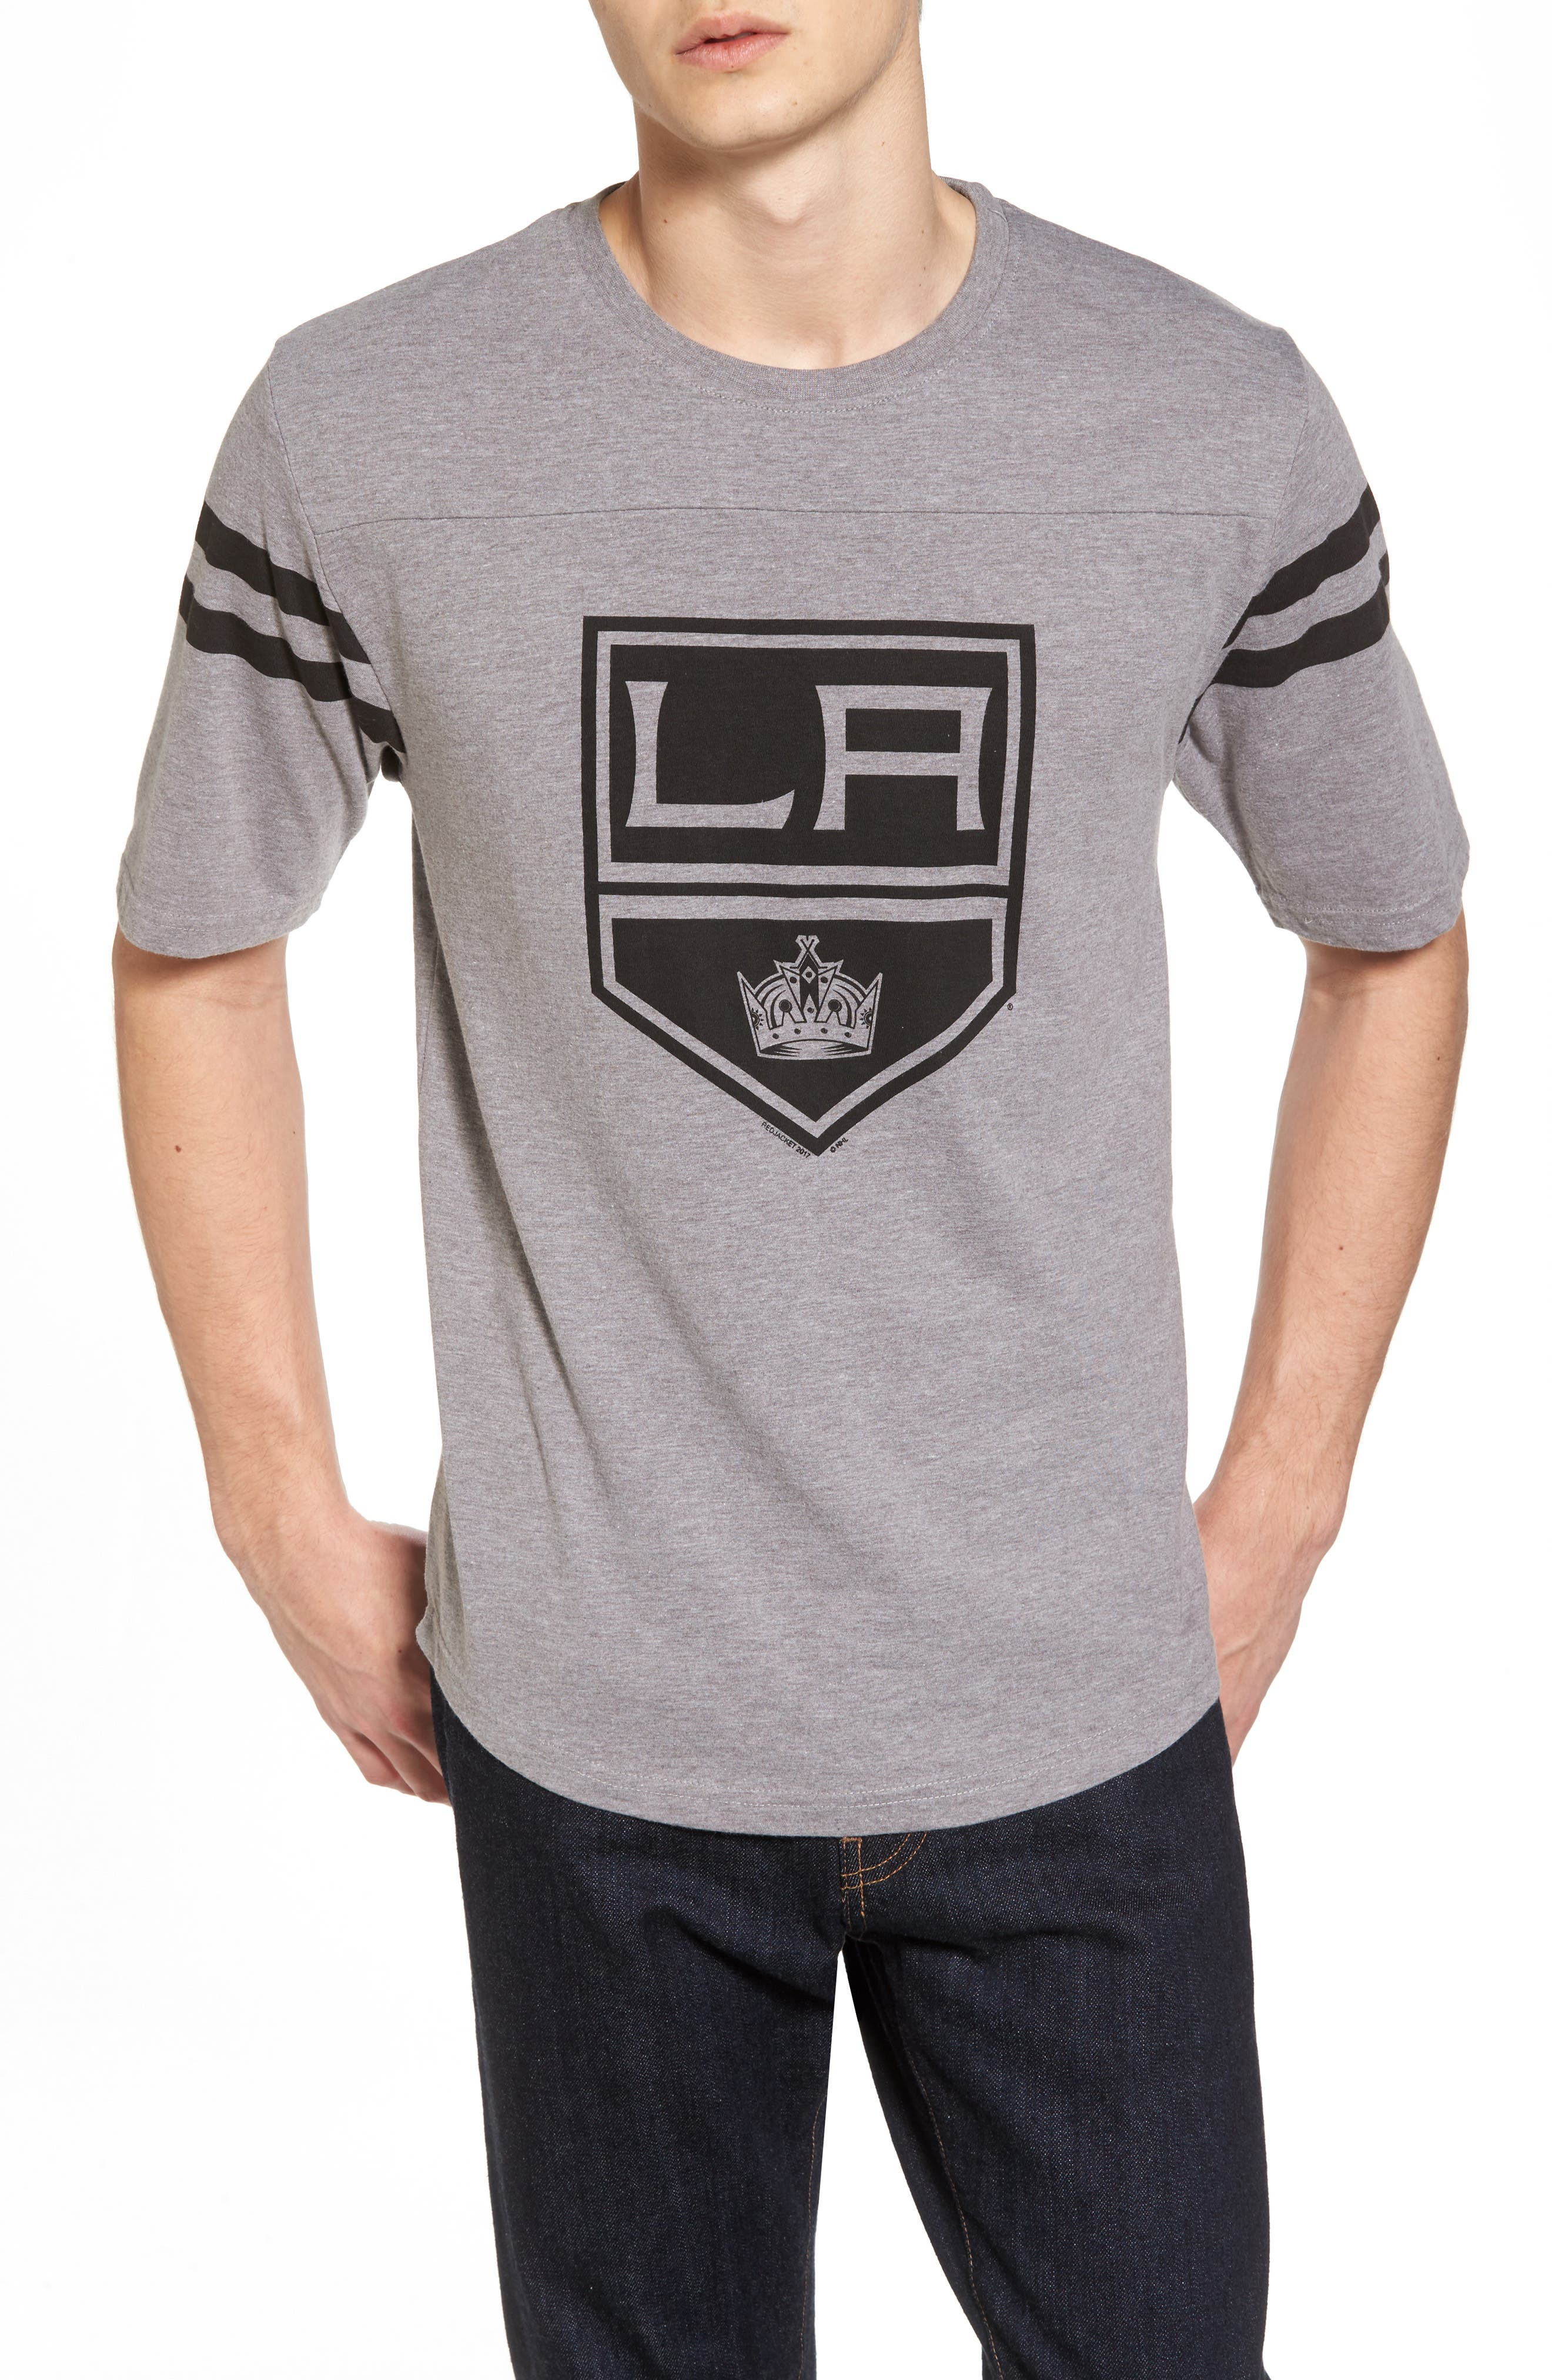 American needle Crosby Los Angeles Kings T-Shirt